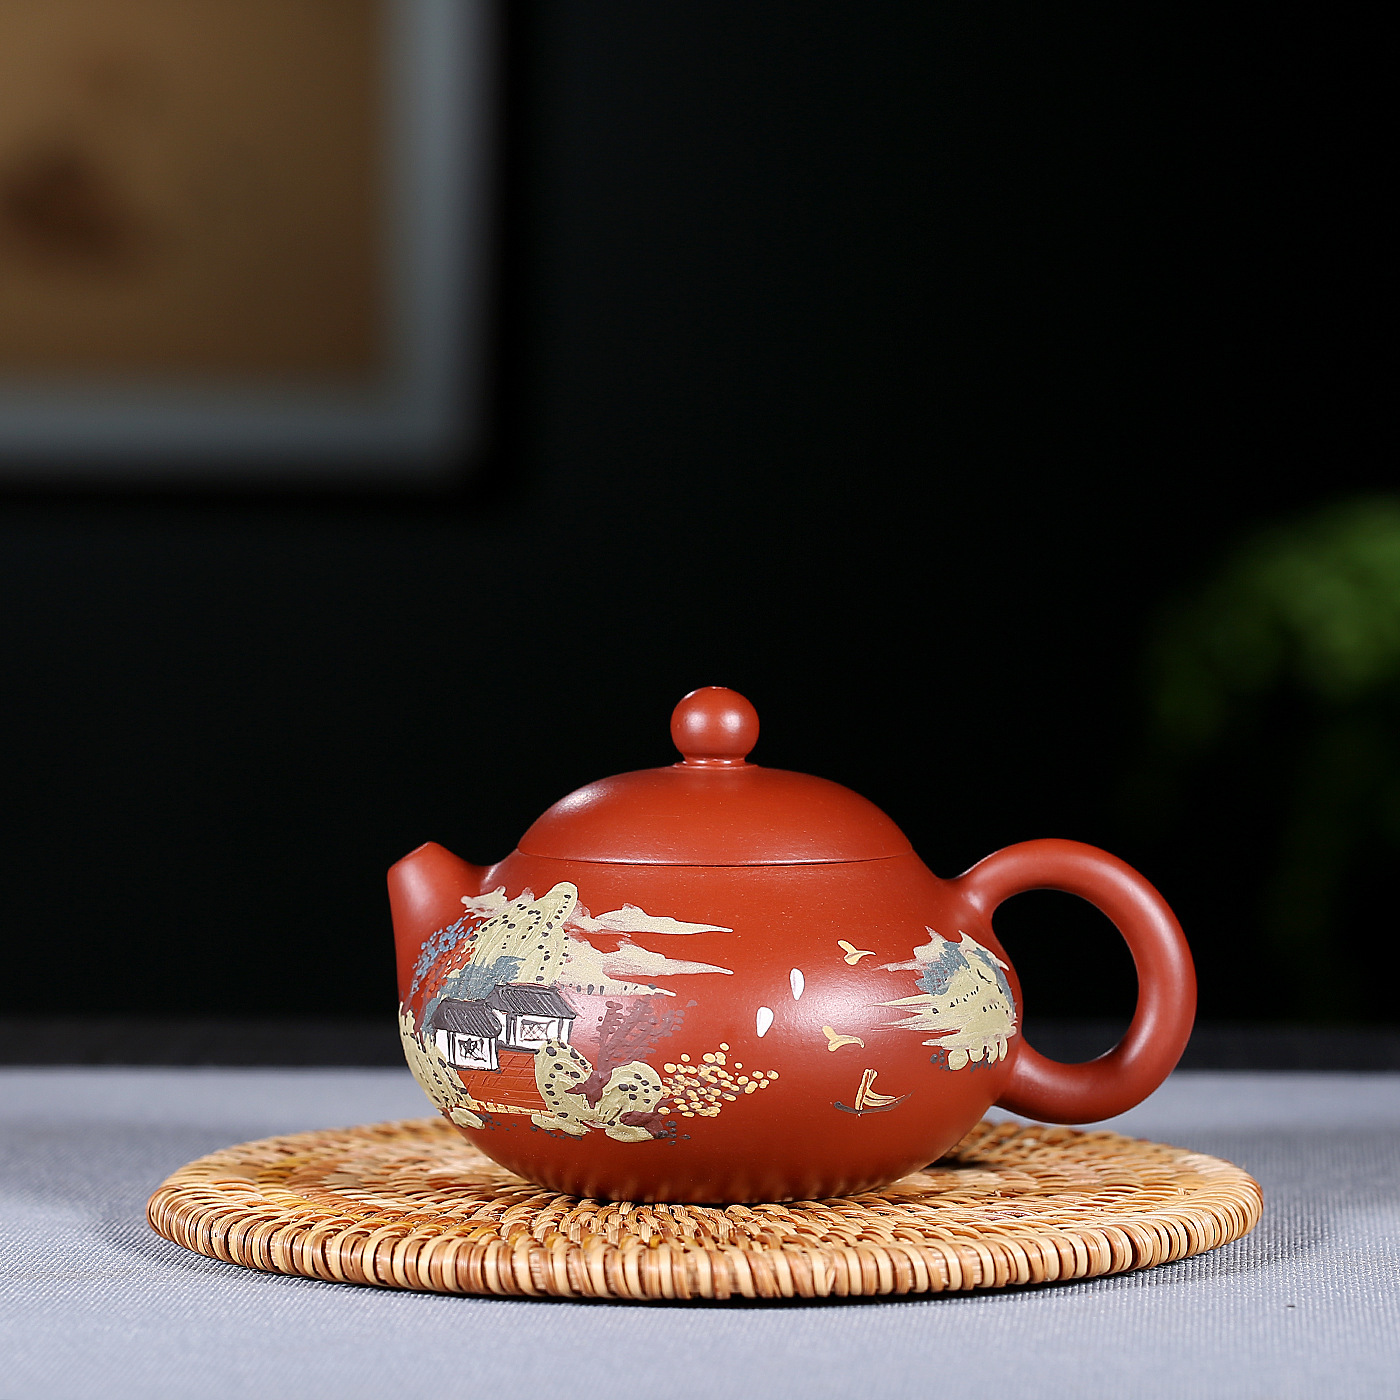 Bright Red Fan Zehongs Mud Painting Of Robes Landscape Pomelo Kettle Kung Fu Tea Have Gift Infusion Of Tea Kettle WholesaleBright Red Fan Zehongs Mud Painting Of Robes Landscape Pomelo Kettle Kung Fu Tea Have Gift Infusion Of Tea Kettle Wholesale